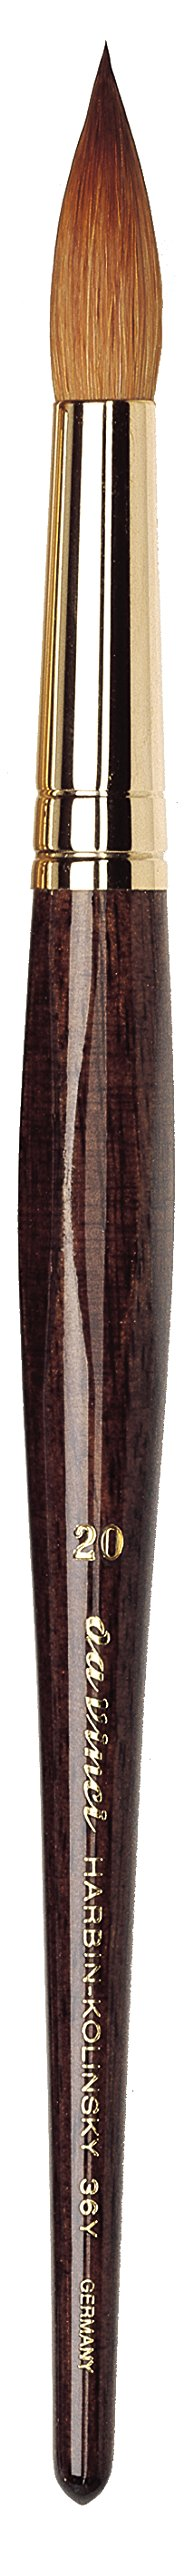 da Vinci Watercolor Series 36Y Paint Brush, Round Harbin Kolinsky Red Sable with Anthracite Hexagonal Handle, Size 20